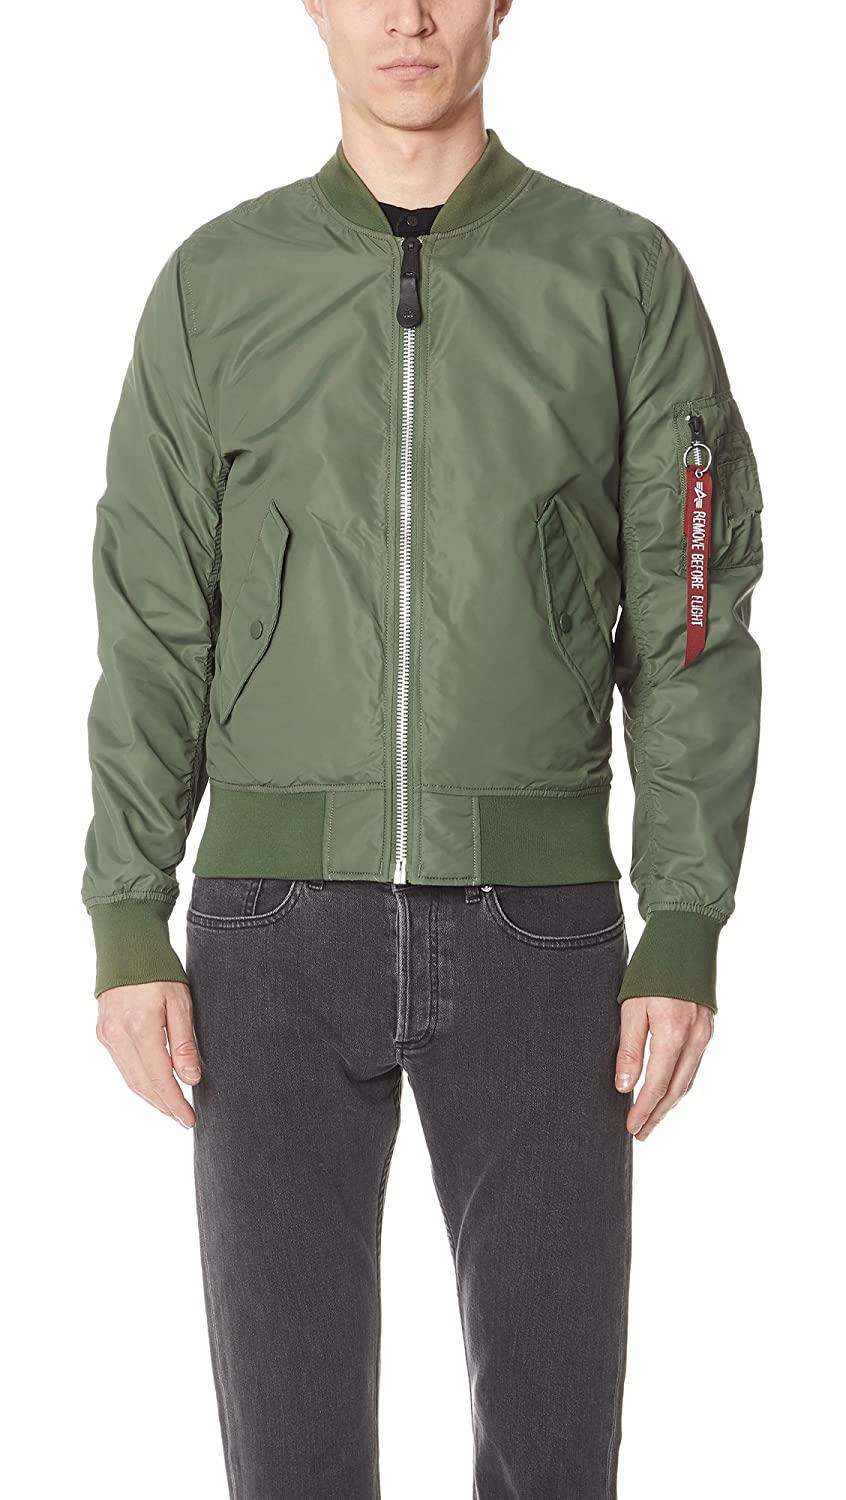 Alpha Industries OUTERWEAR メンズ B07815BZ93 X-Large|セージ セージ X-Large